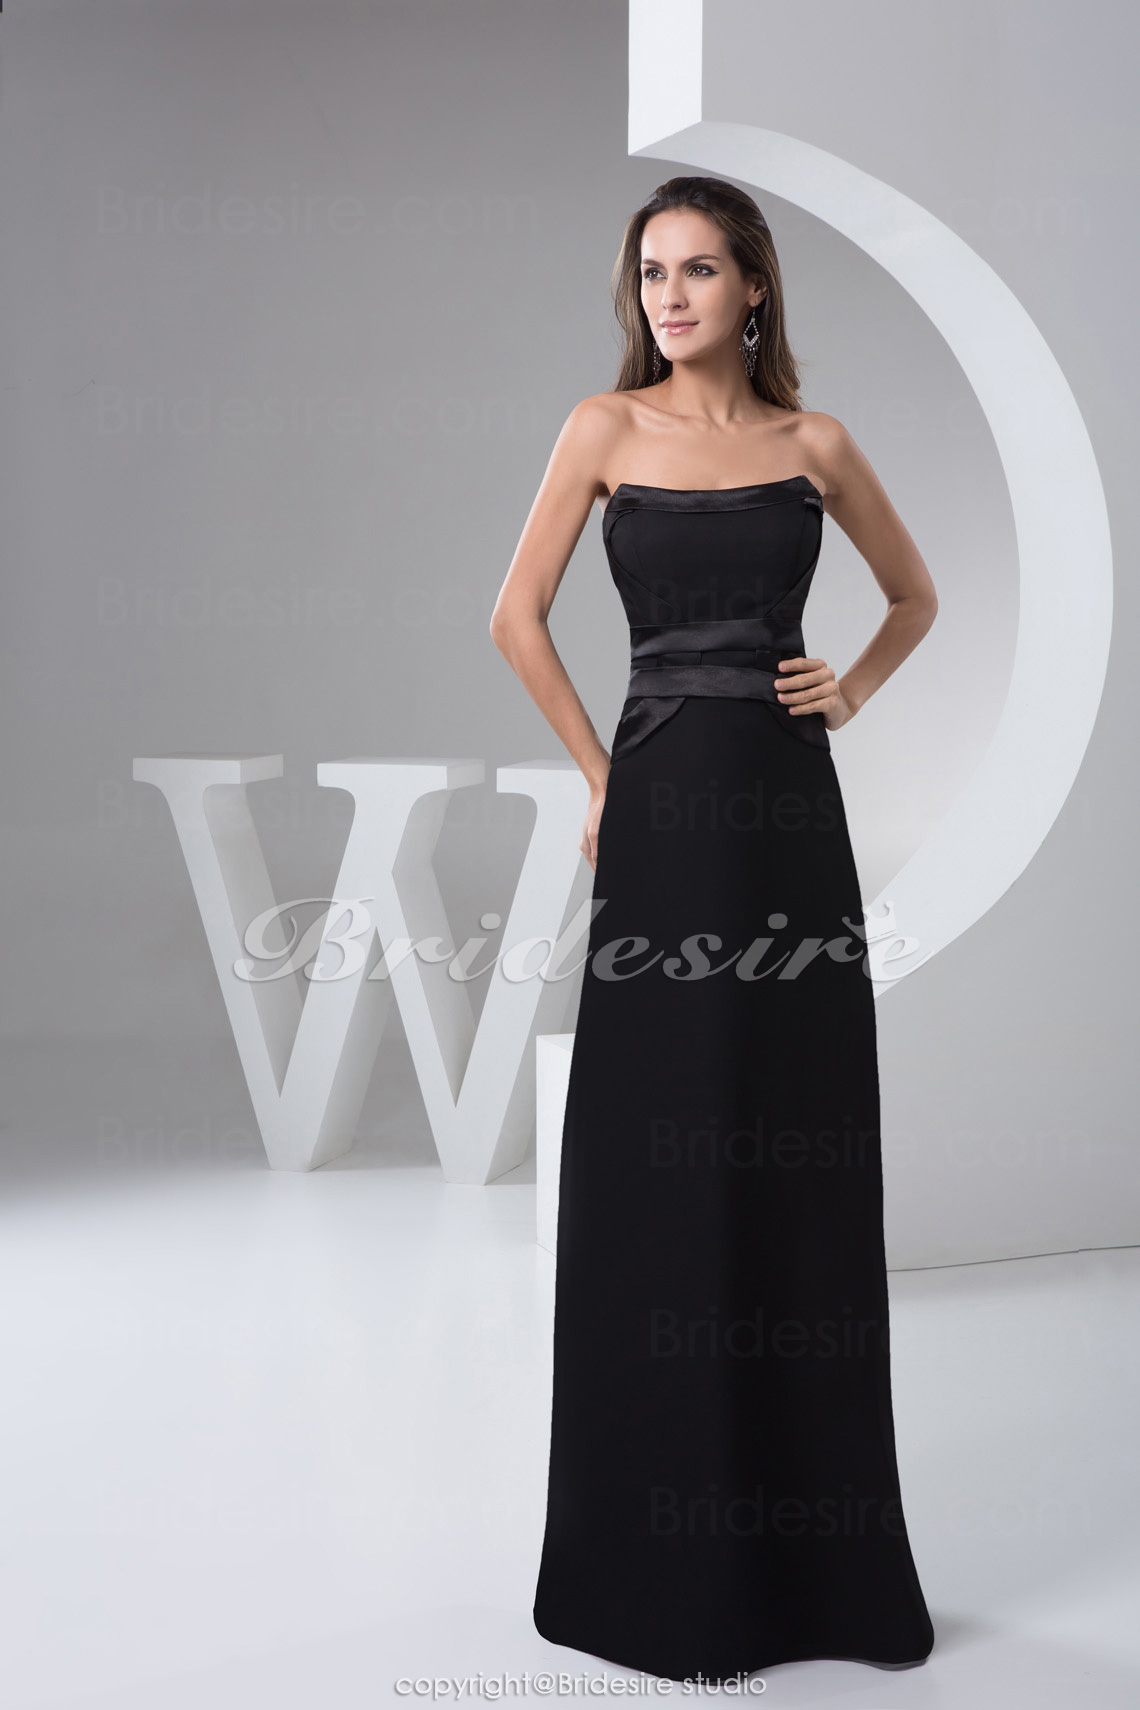 A-line Strapless Floor-length Sleeveless Chiffon Satin Bridesmaid Dress